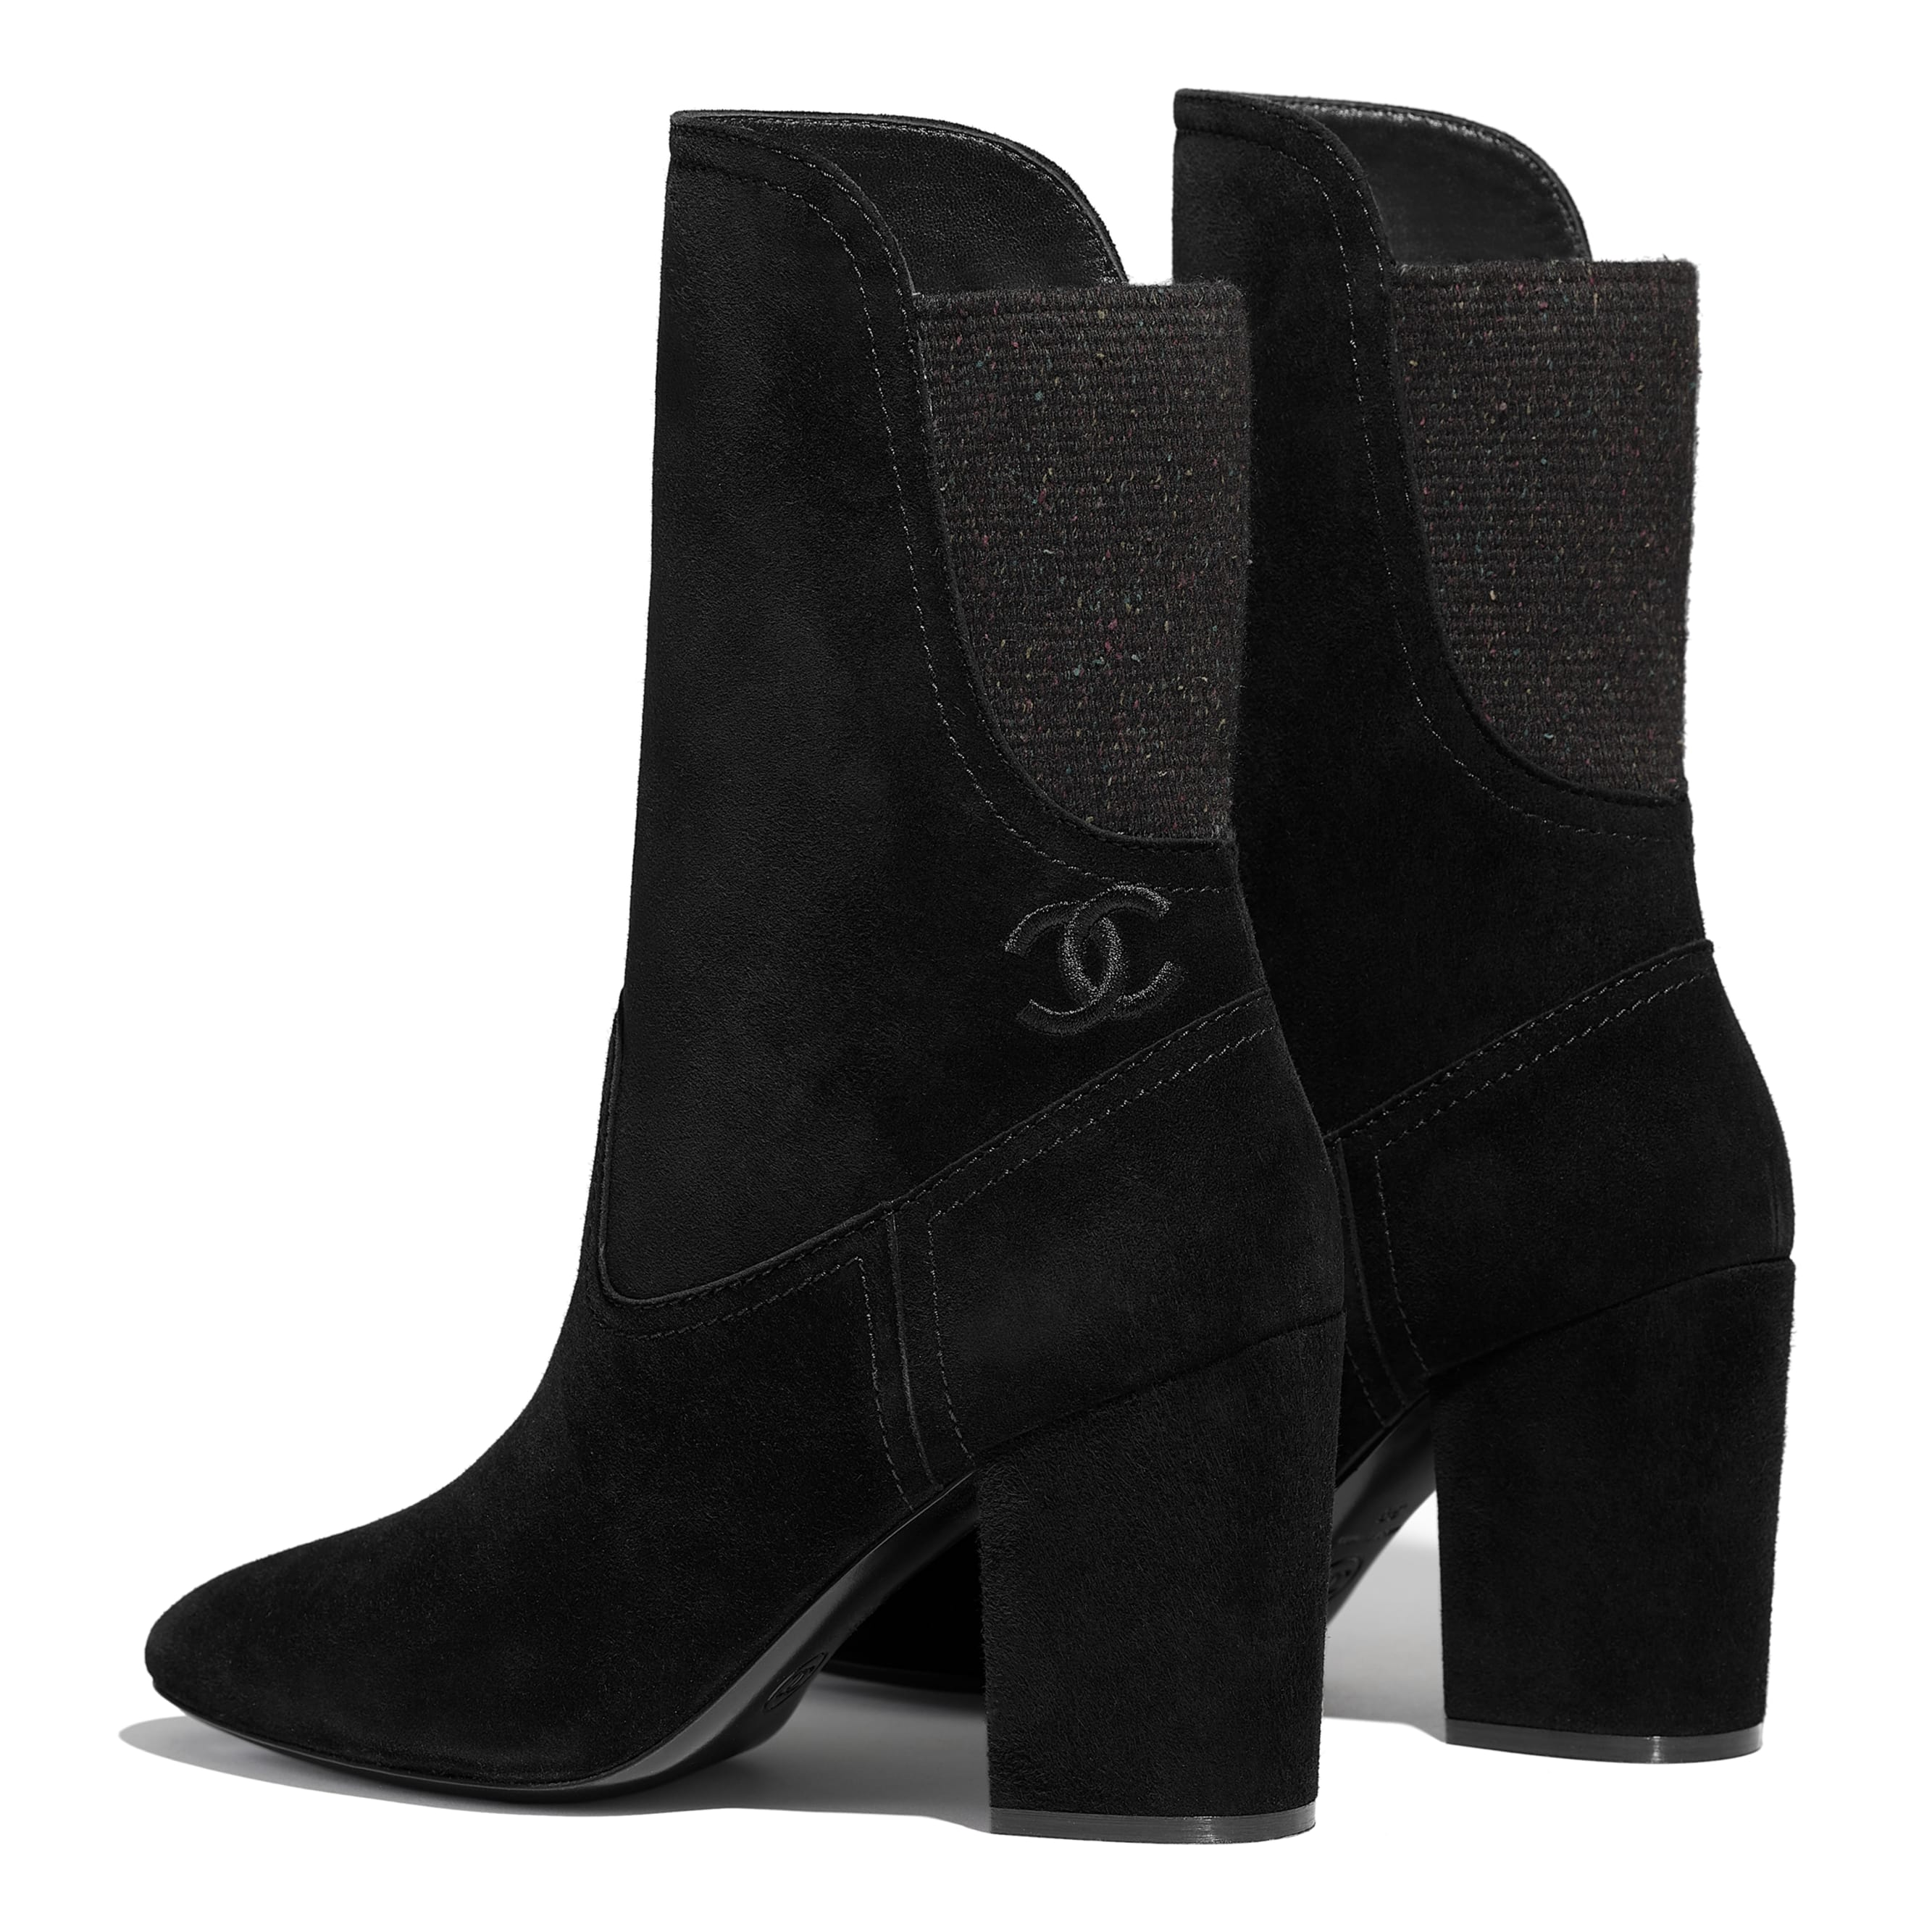 Ankle Boots - Black -  Velvet Calfskin & Mixed Fibers - Other view - see standard sized version